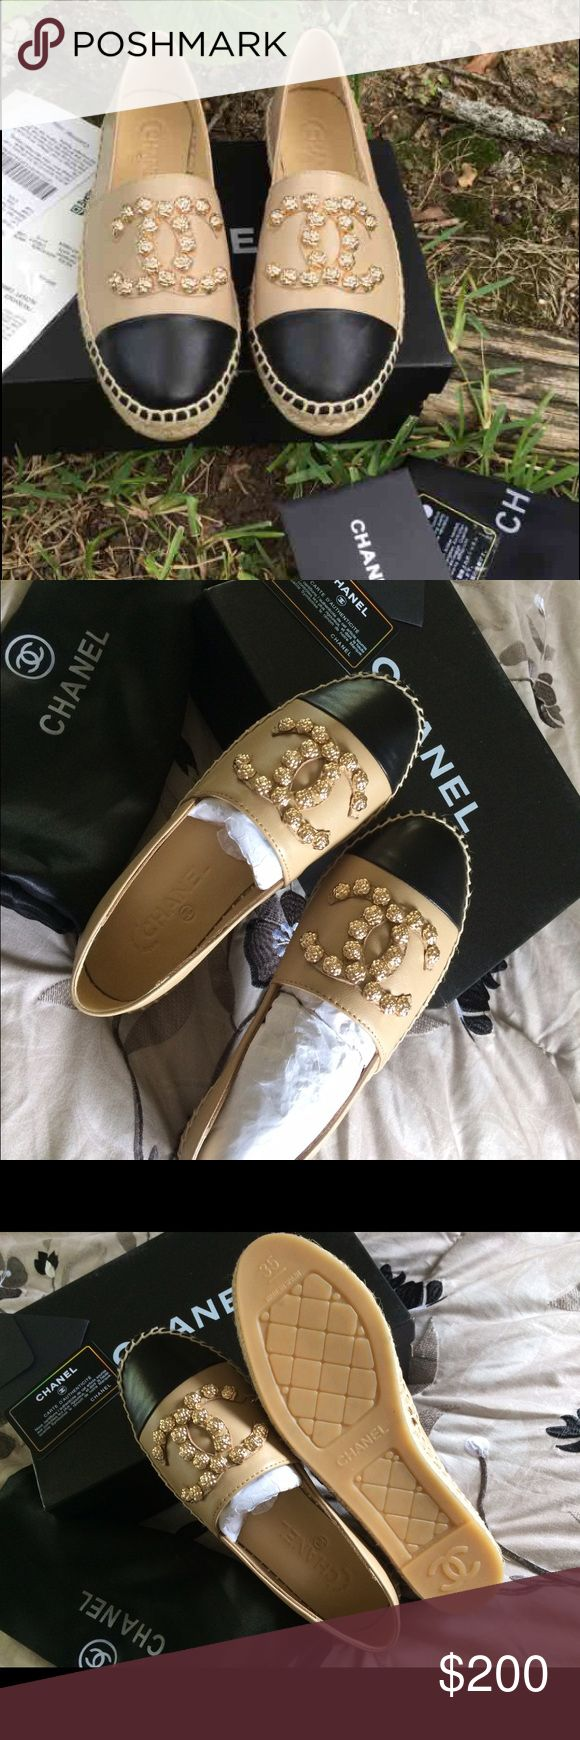 Chanel espadrilles SAME DAY SHIPPING , SIZE 5. COME WHIT DUST BAG AND BOX, PRICE REFECT, GREAT QUALITY MATERIAL , PRICE IS FIRM, IF YOU HAVE A PROBLEM WHIT YOUR ORDER PLEASE CONTACT ME BEFORE , THANK YOU :) CHANEL Shoes Espadrilles